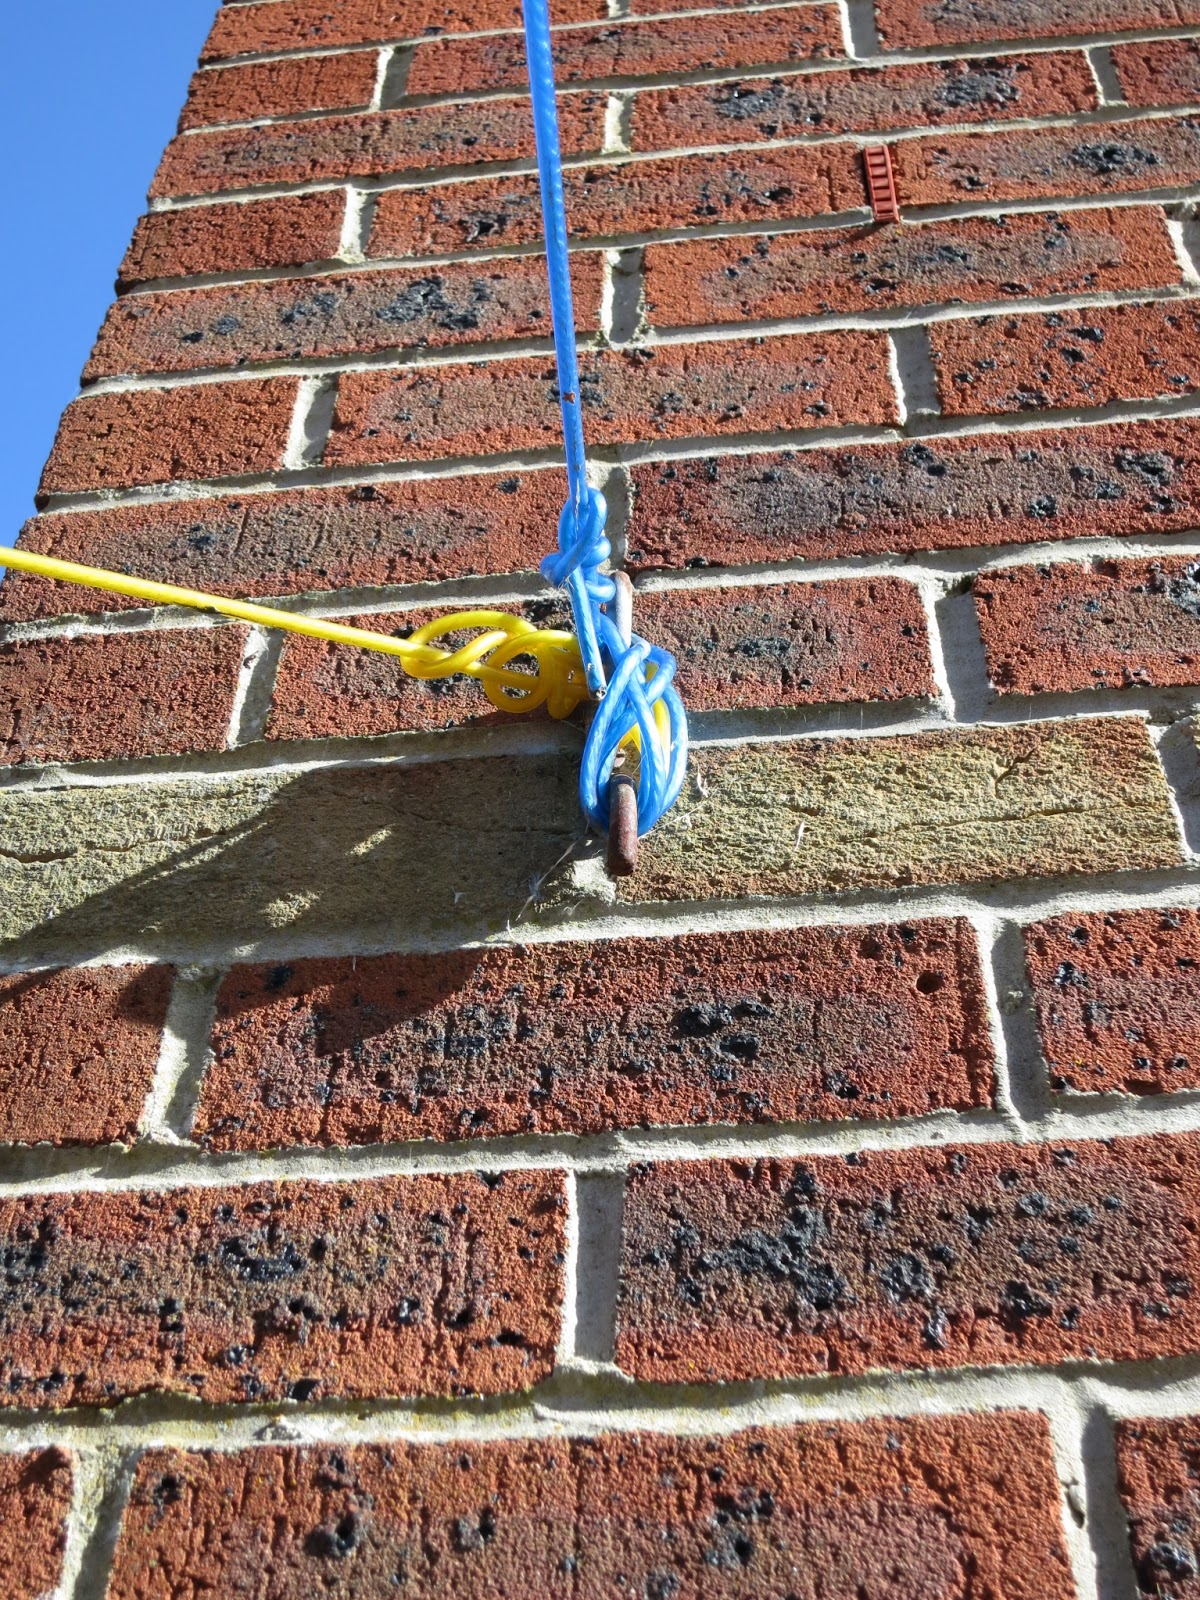 Washing lines, yellow and blue, wound round bracket on brick wall of house.